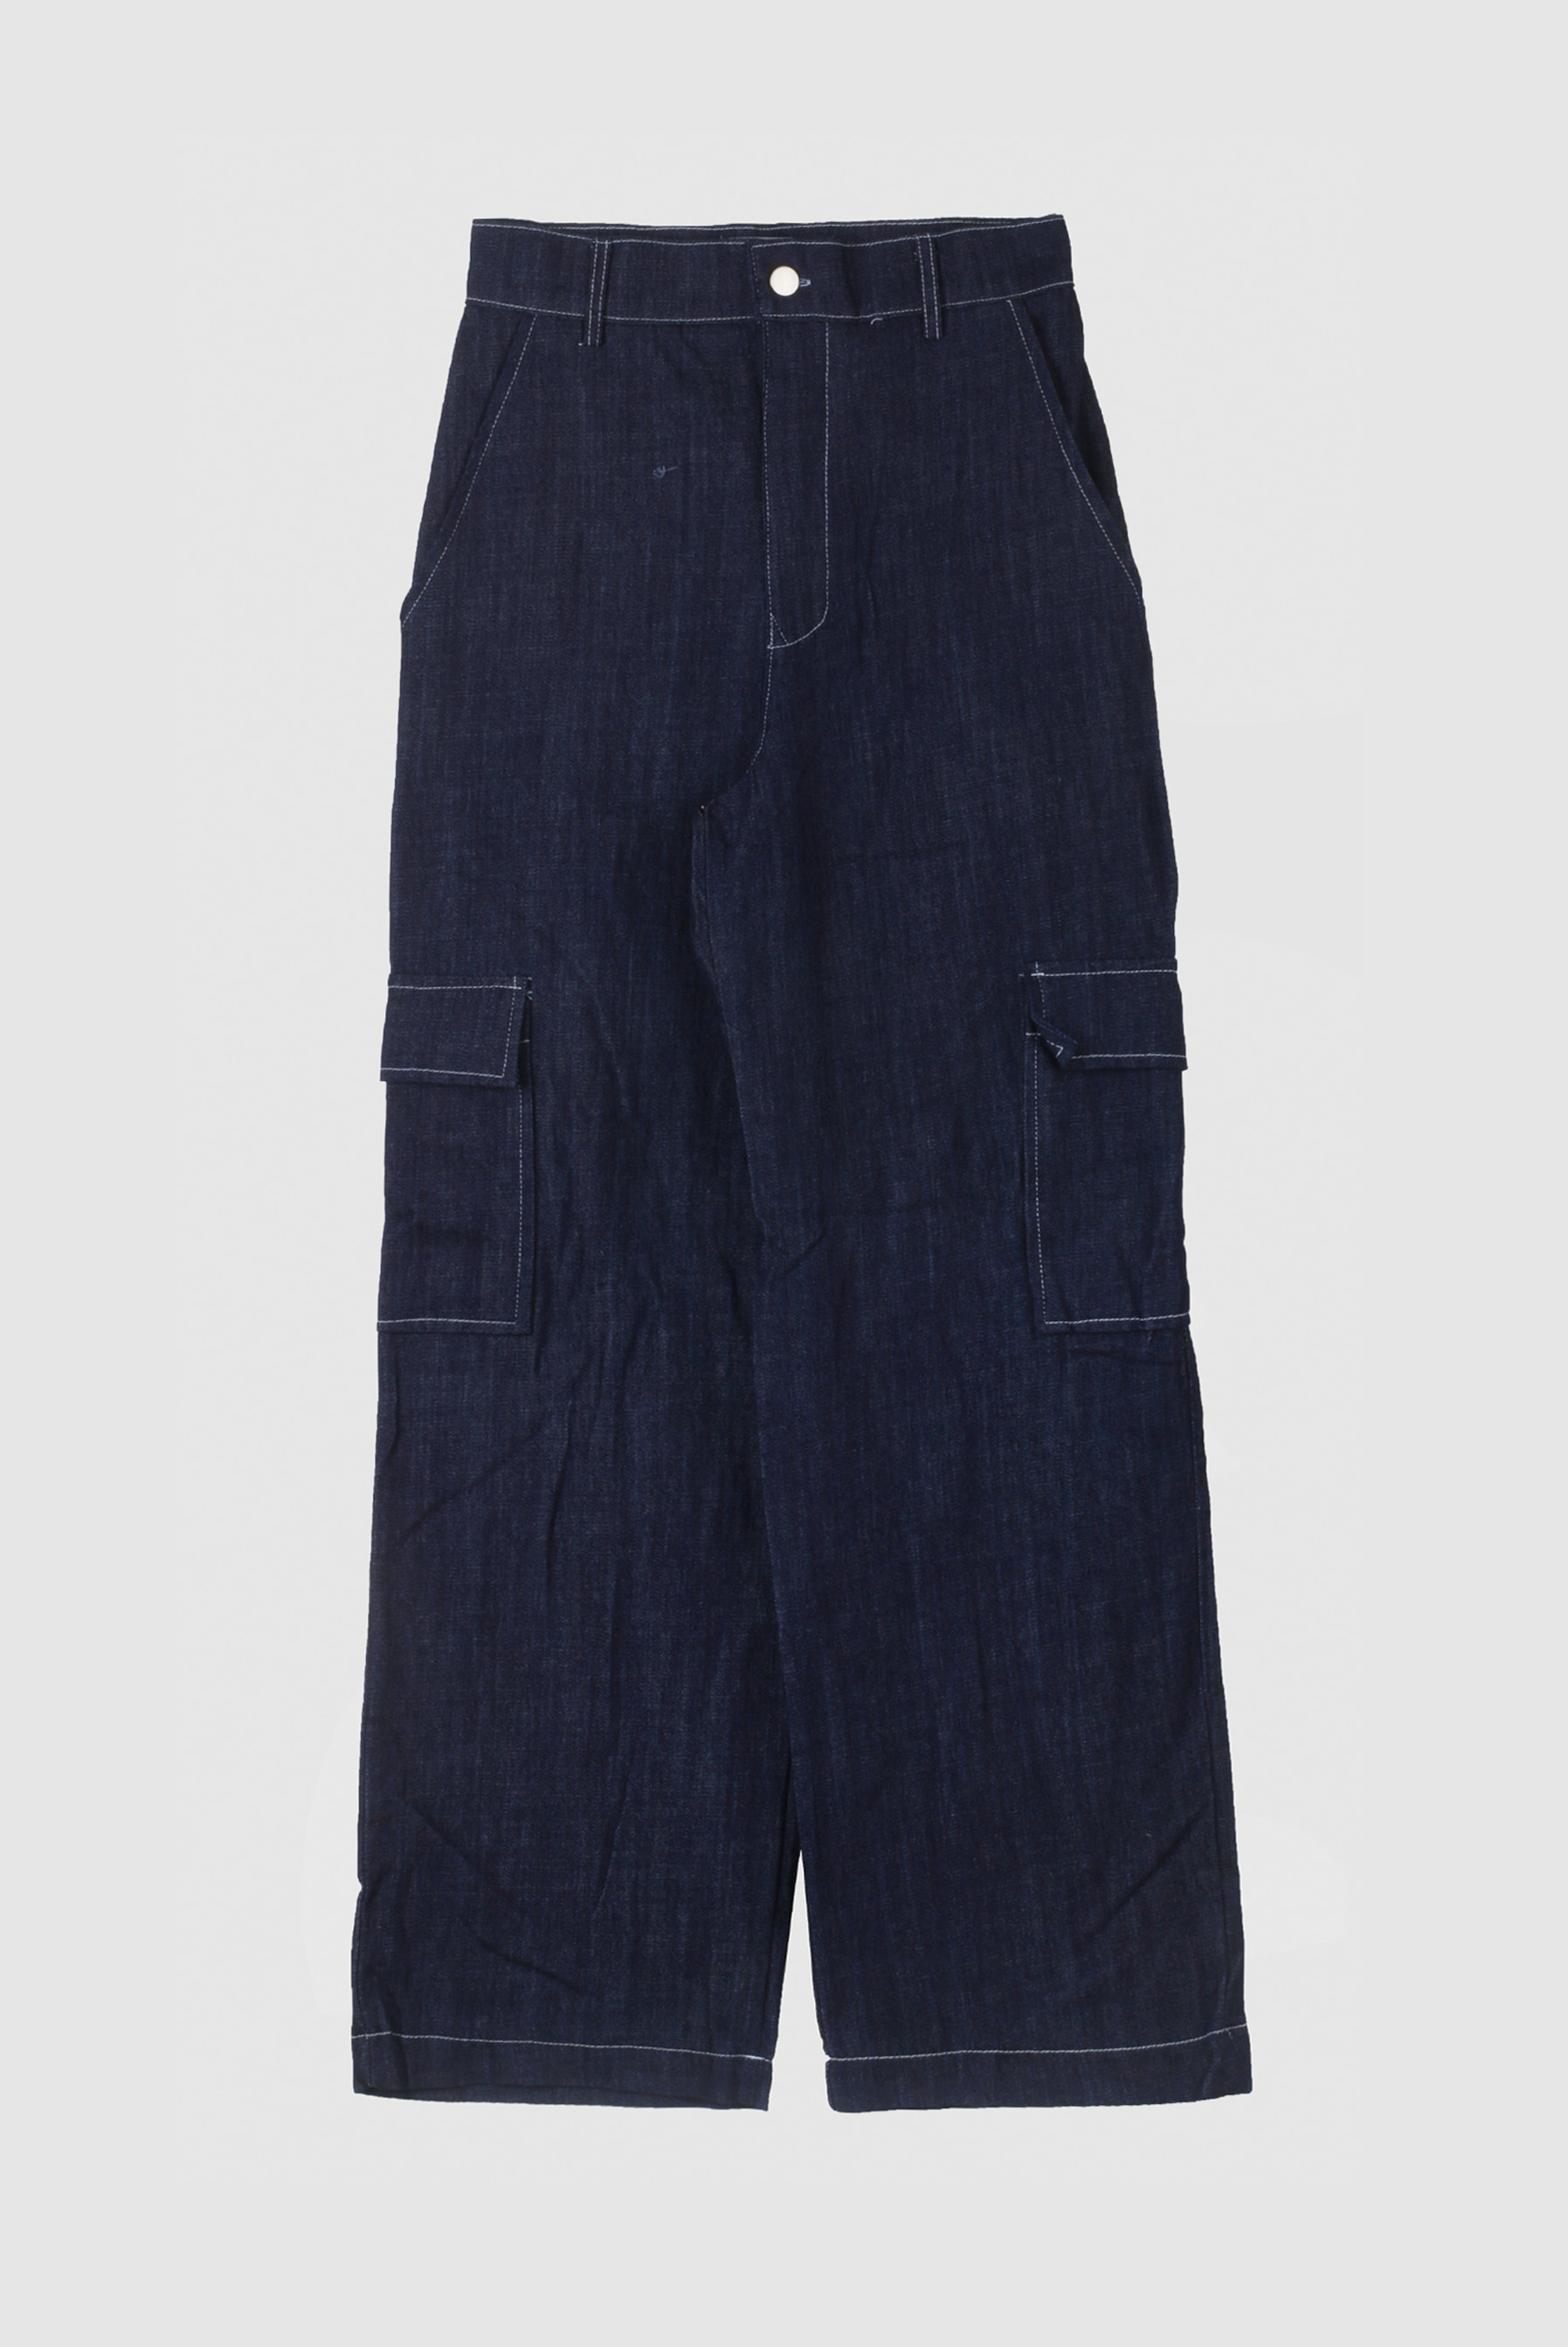 Stitch Cargo_Denim Pant